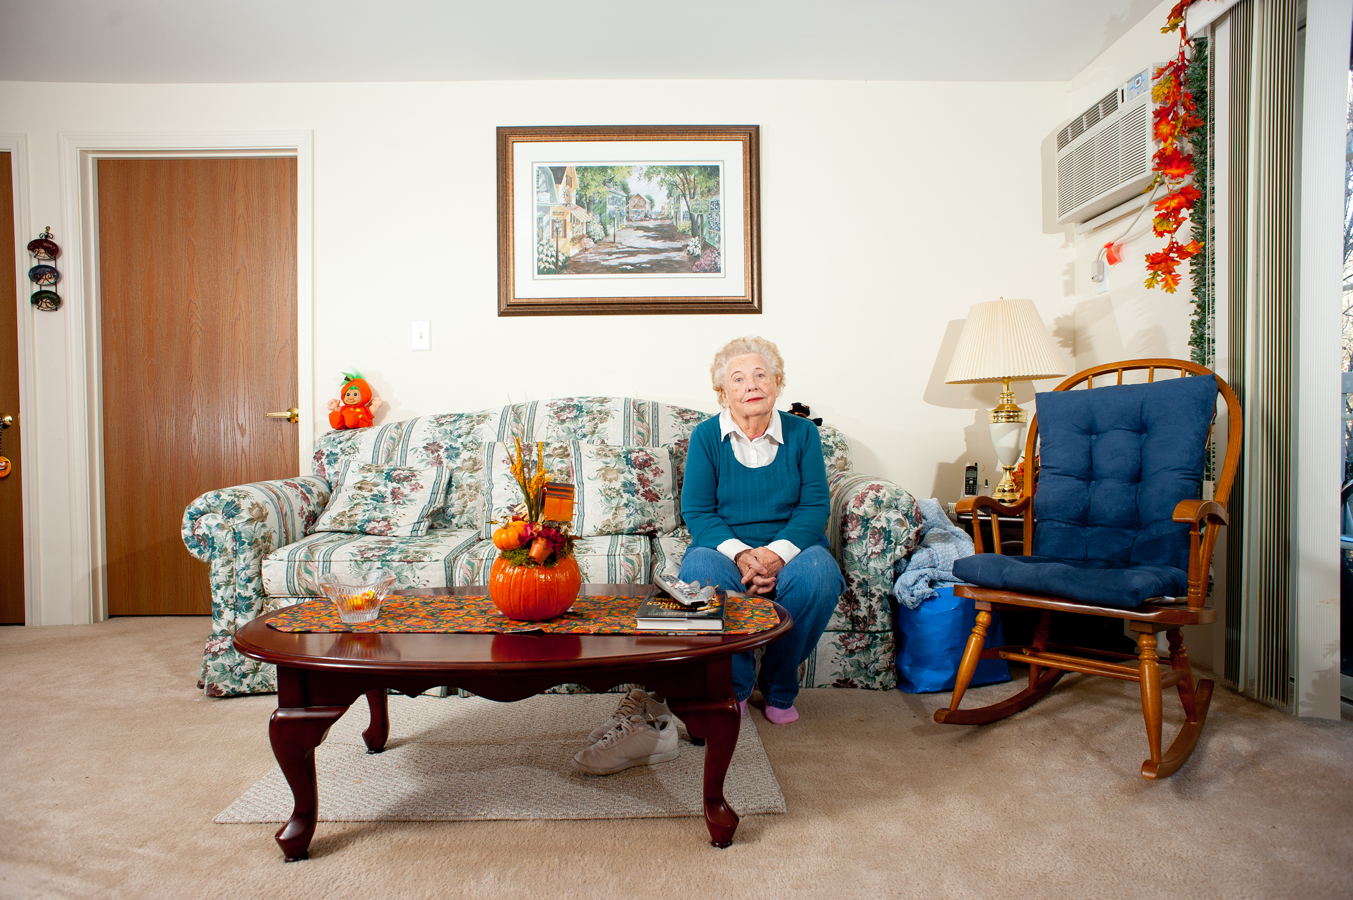 Grandmother sits awkwardly in her living room.  Kenneth M. Ruggiano Photographer based in Tulsa Oklahoma